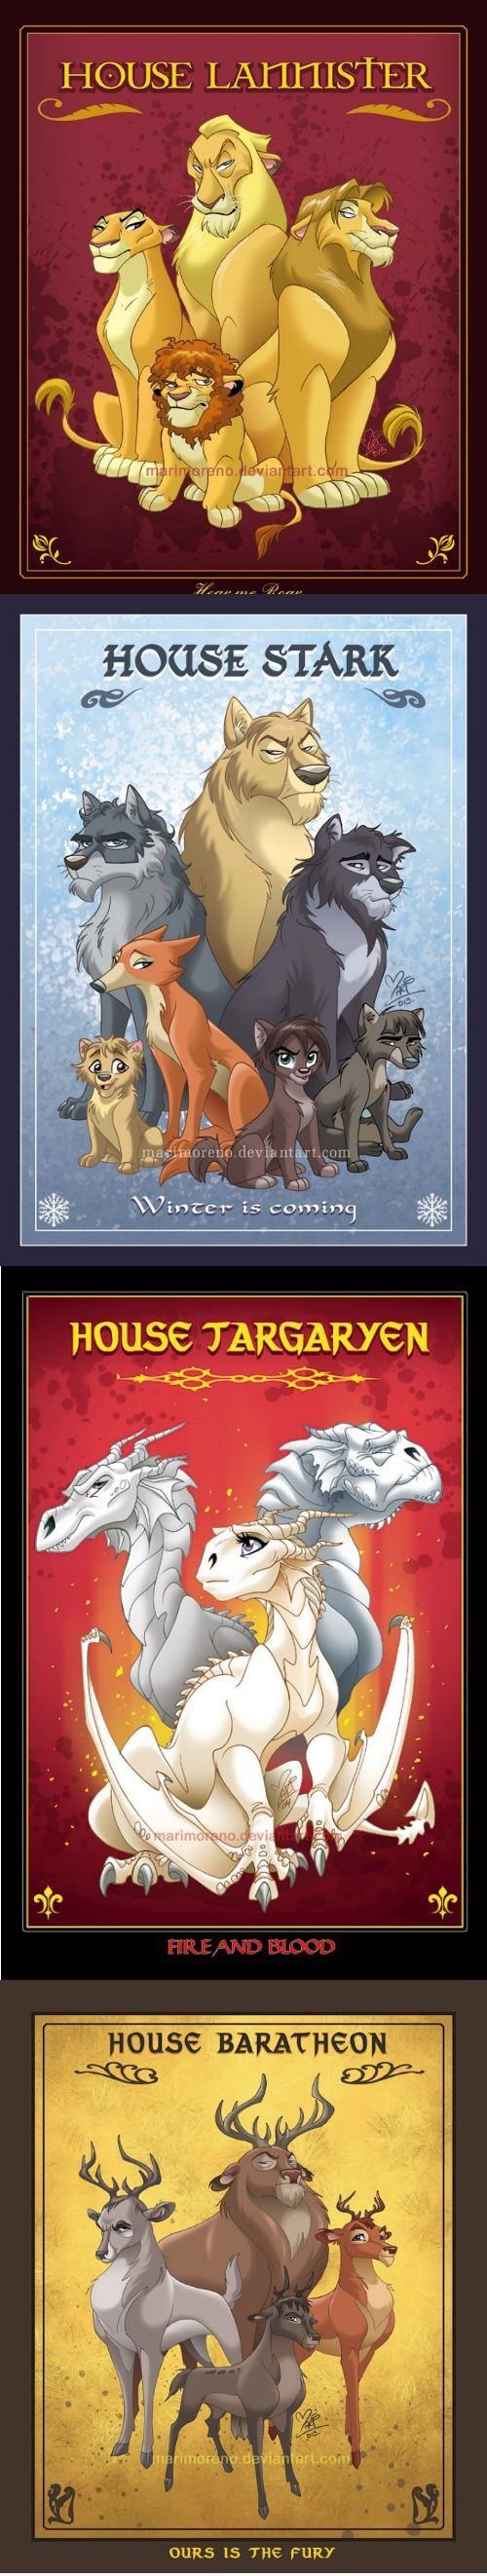 game-of-thrones-disney-versin